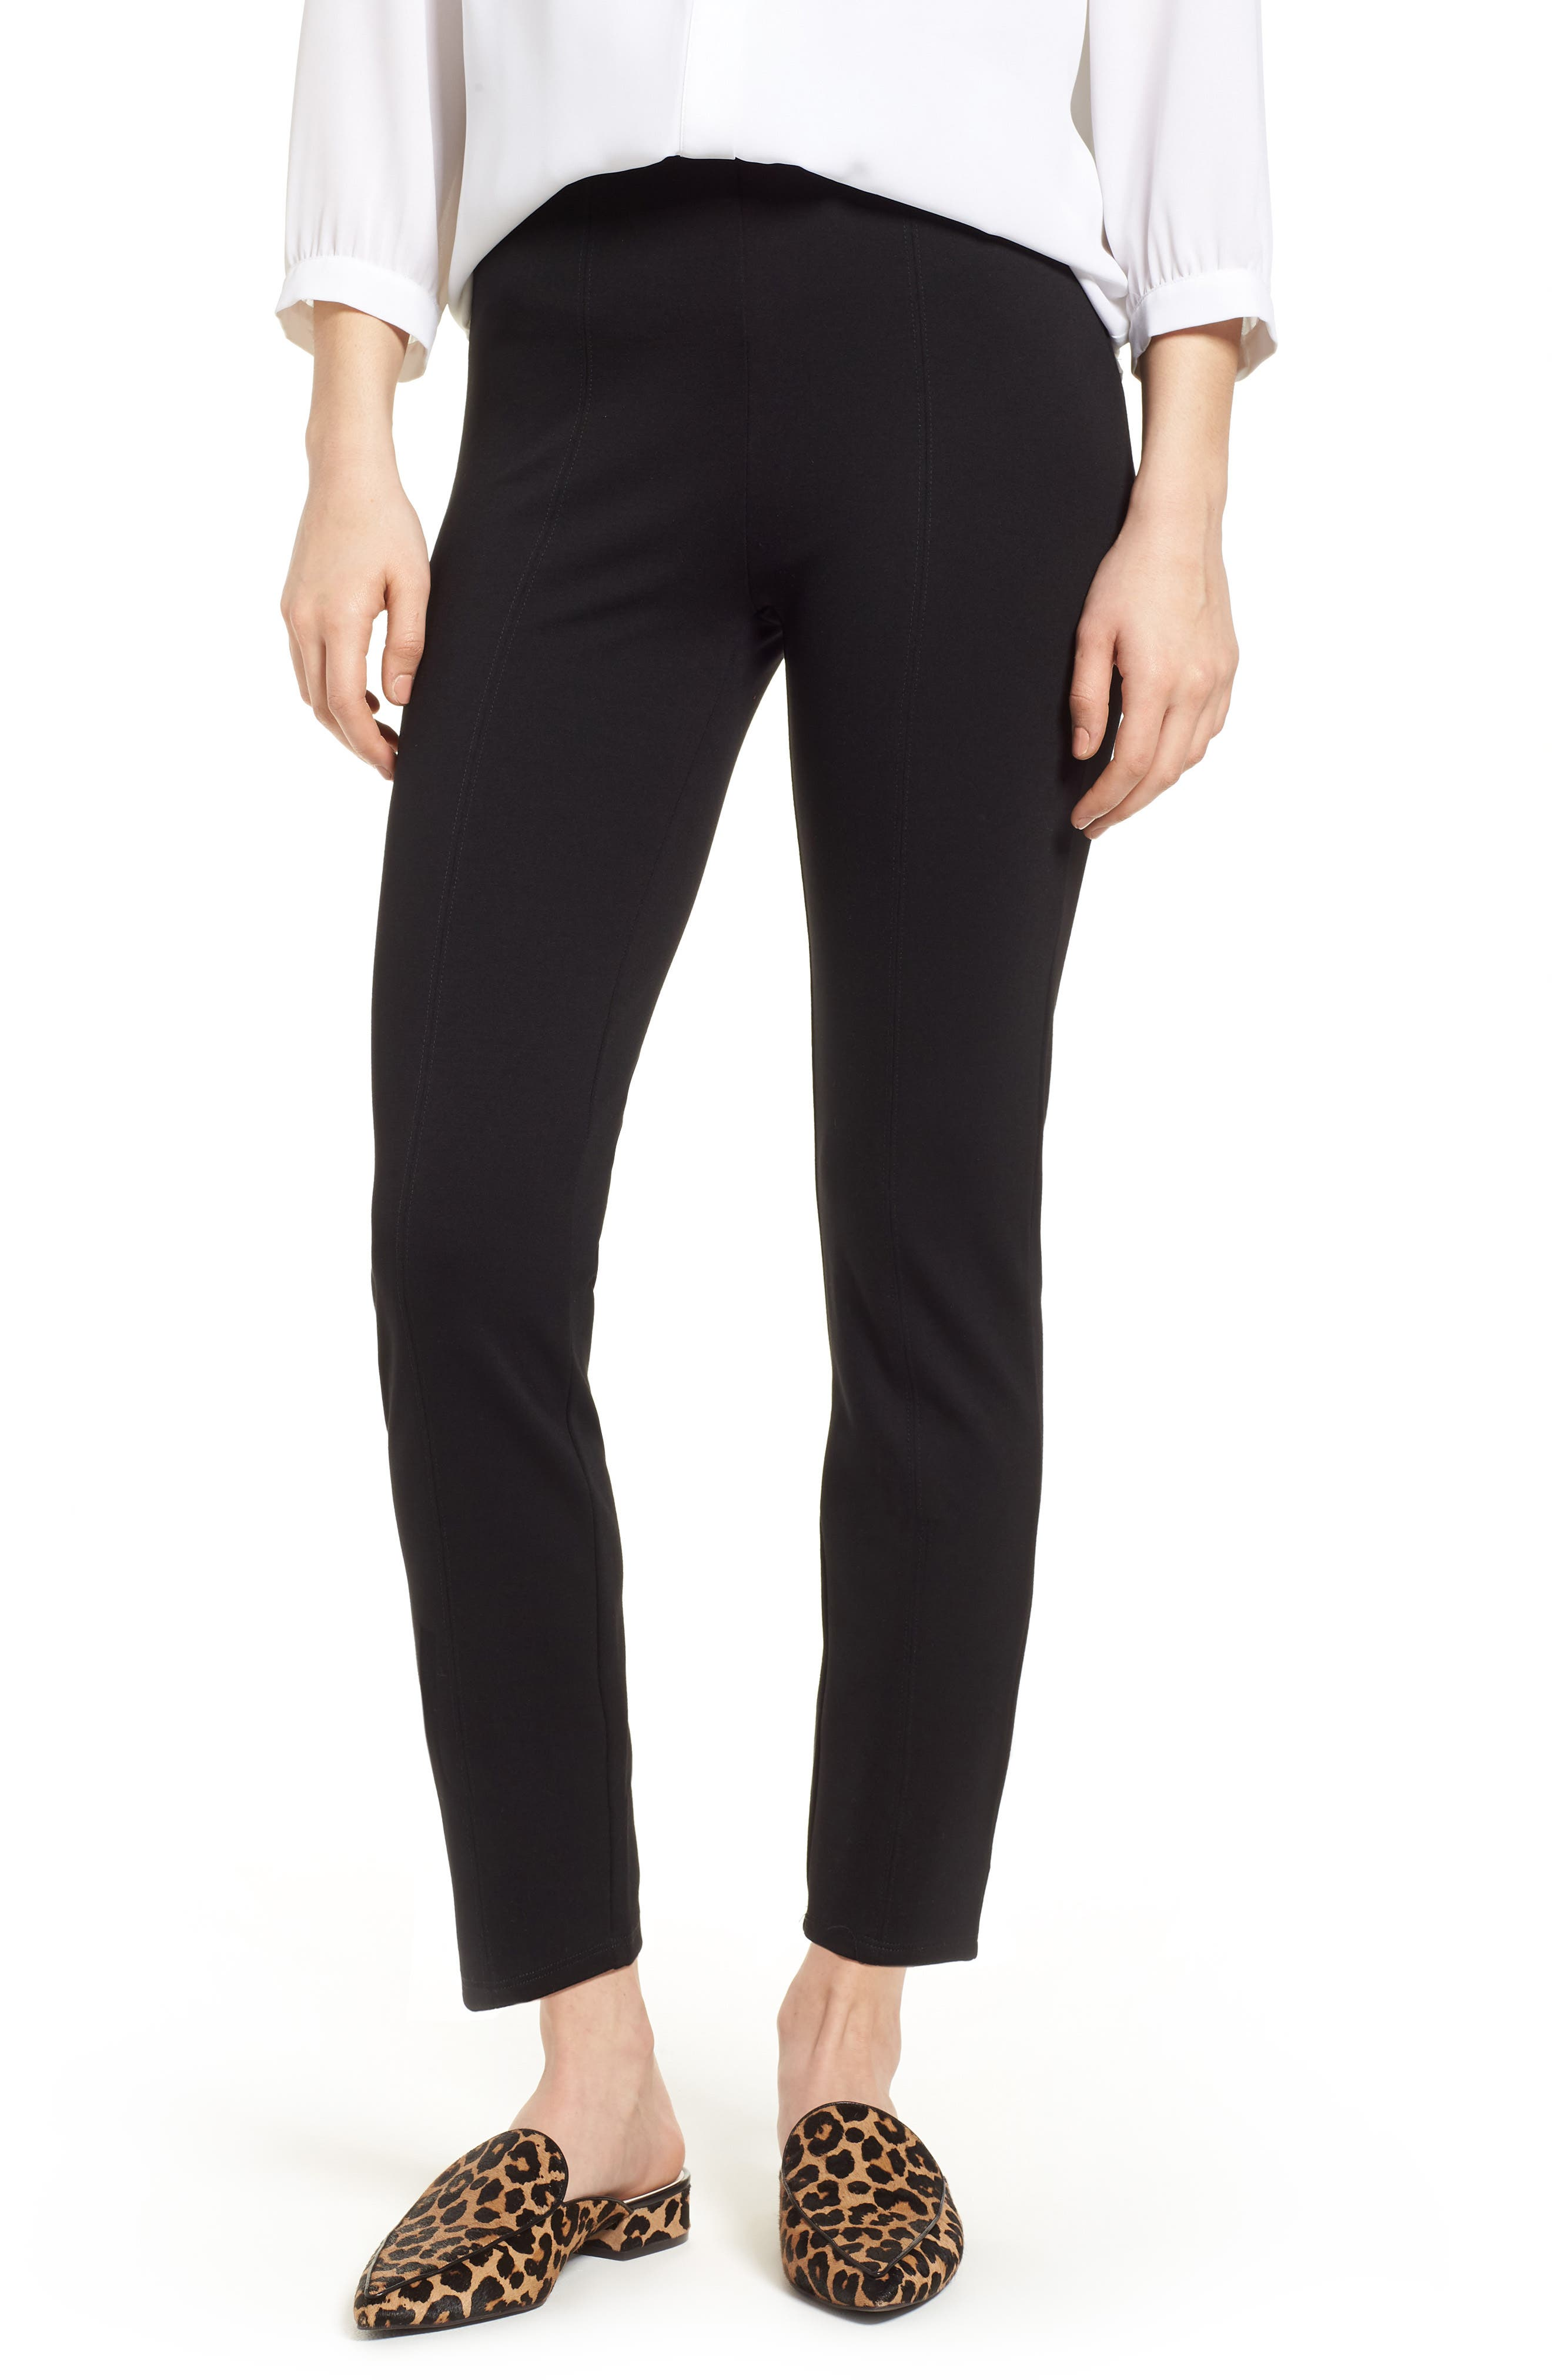 Macklin Ponte Leggings,                         Main,                         color, Black